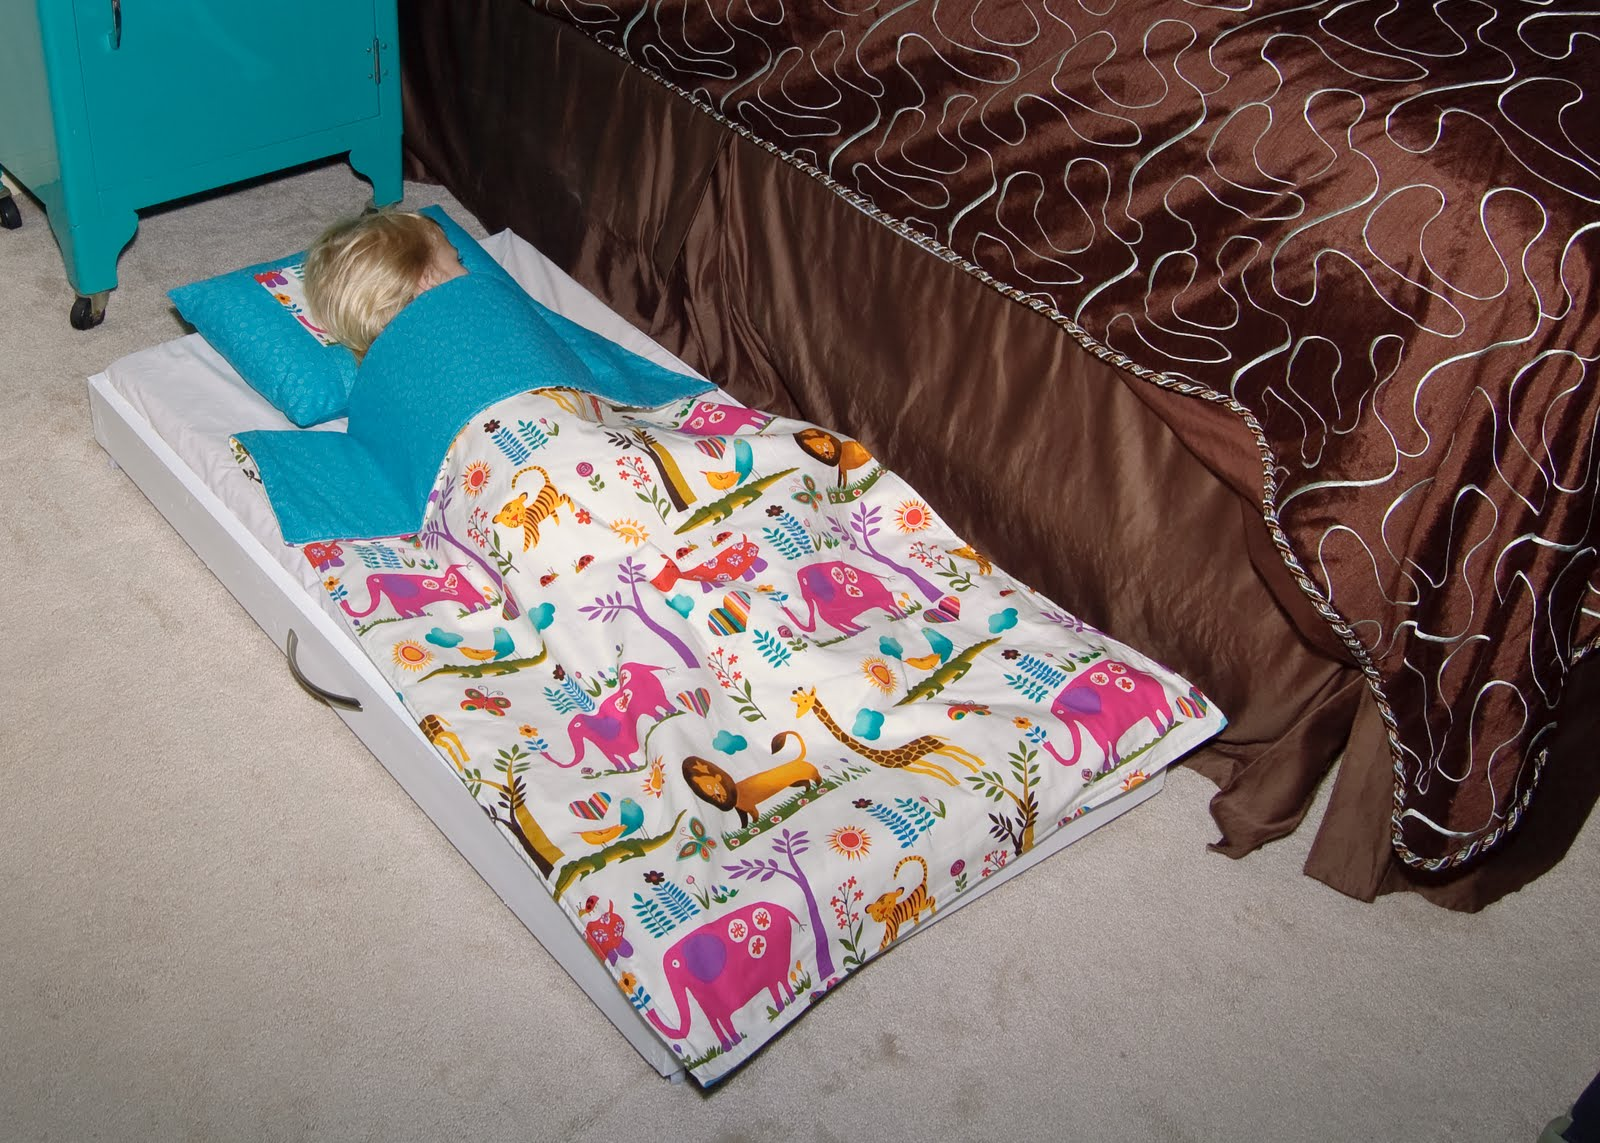 lilybug designs toddler trundle bed tutorial - my daughter has already put it to use as you can see